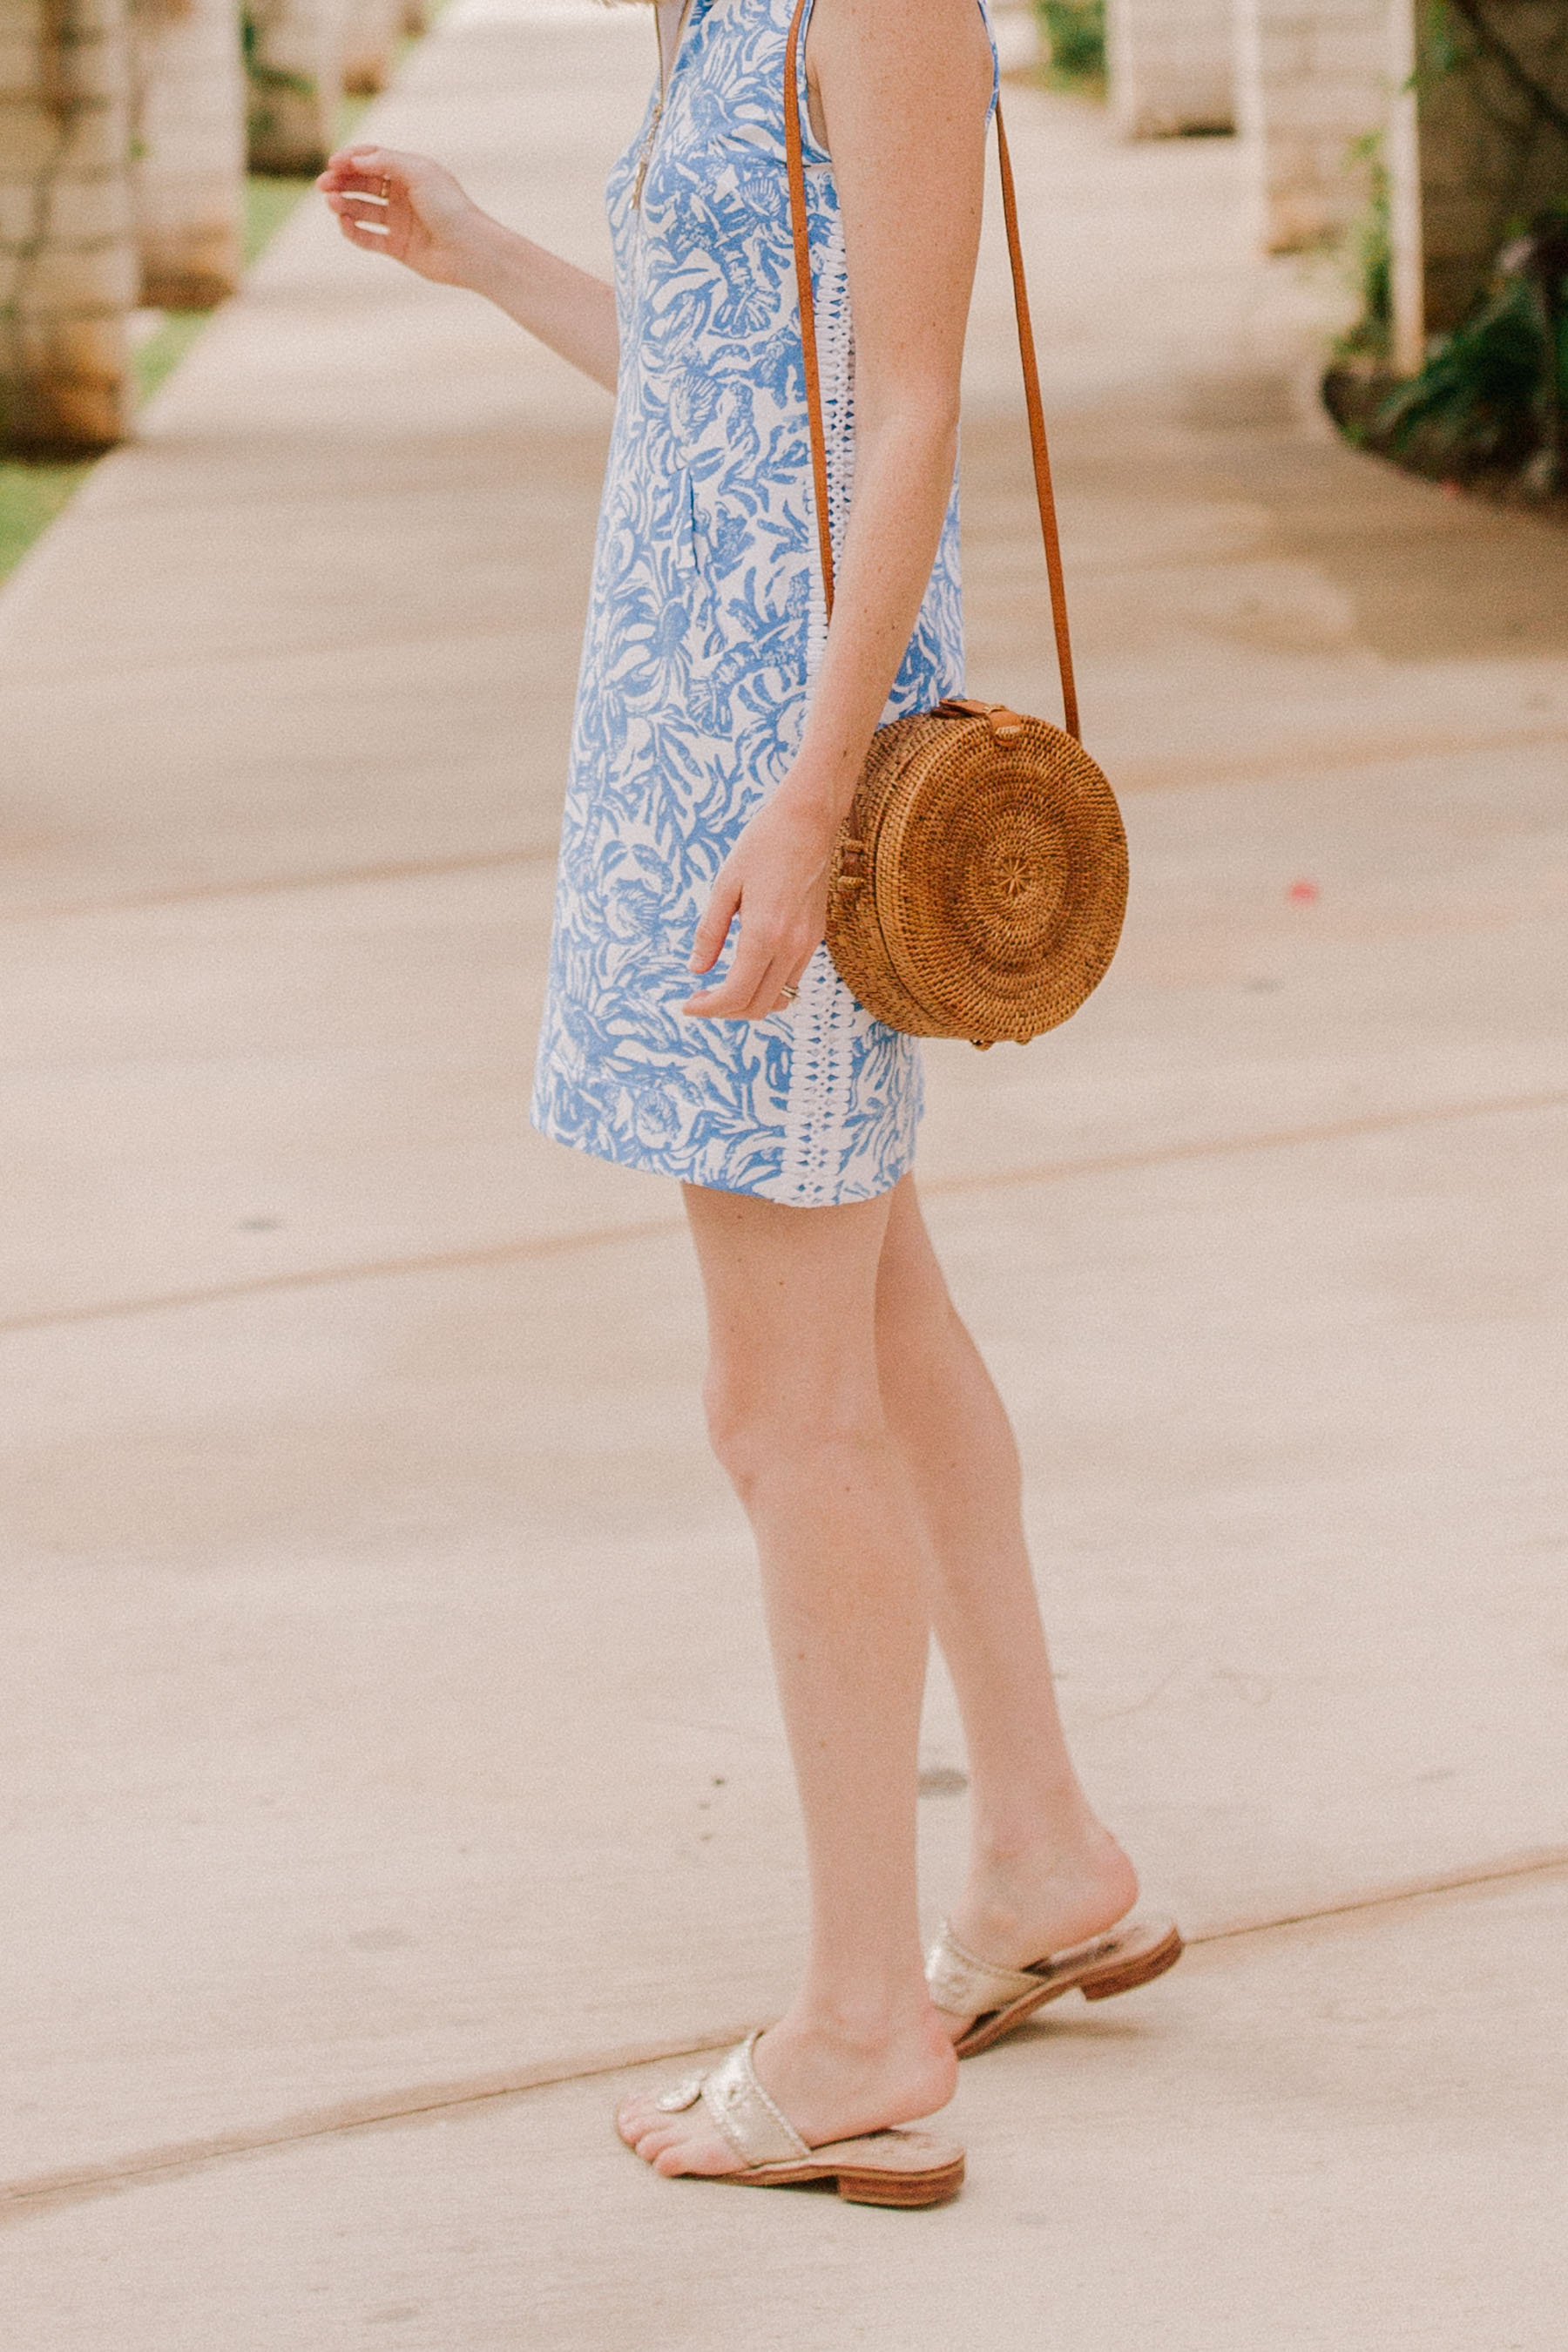 Kelly is wearing a Lilly Pulitzer dress - Kelly in the City